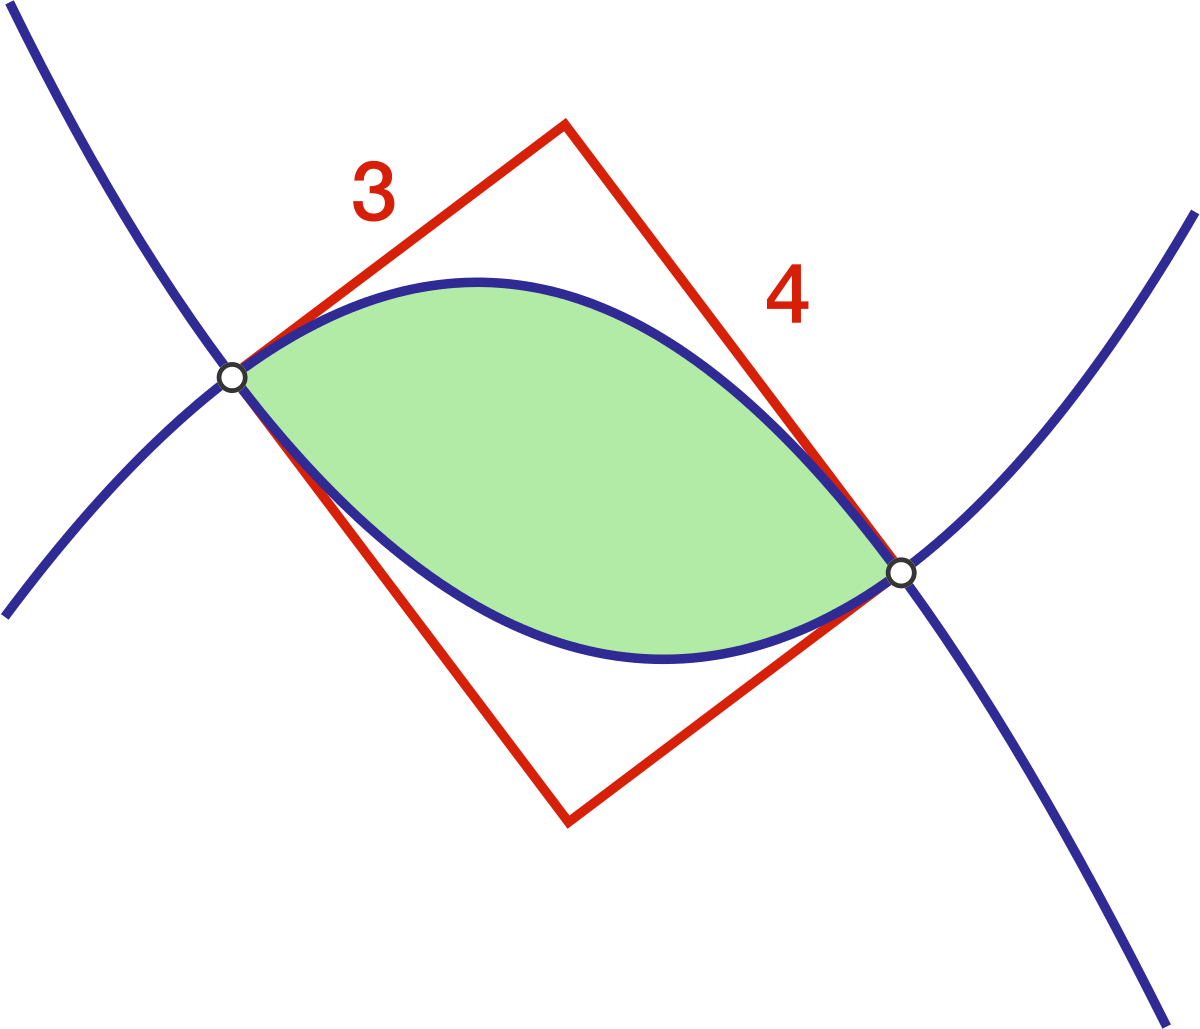 Find the area of the region bounded by the 2 curves.